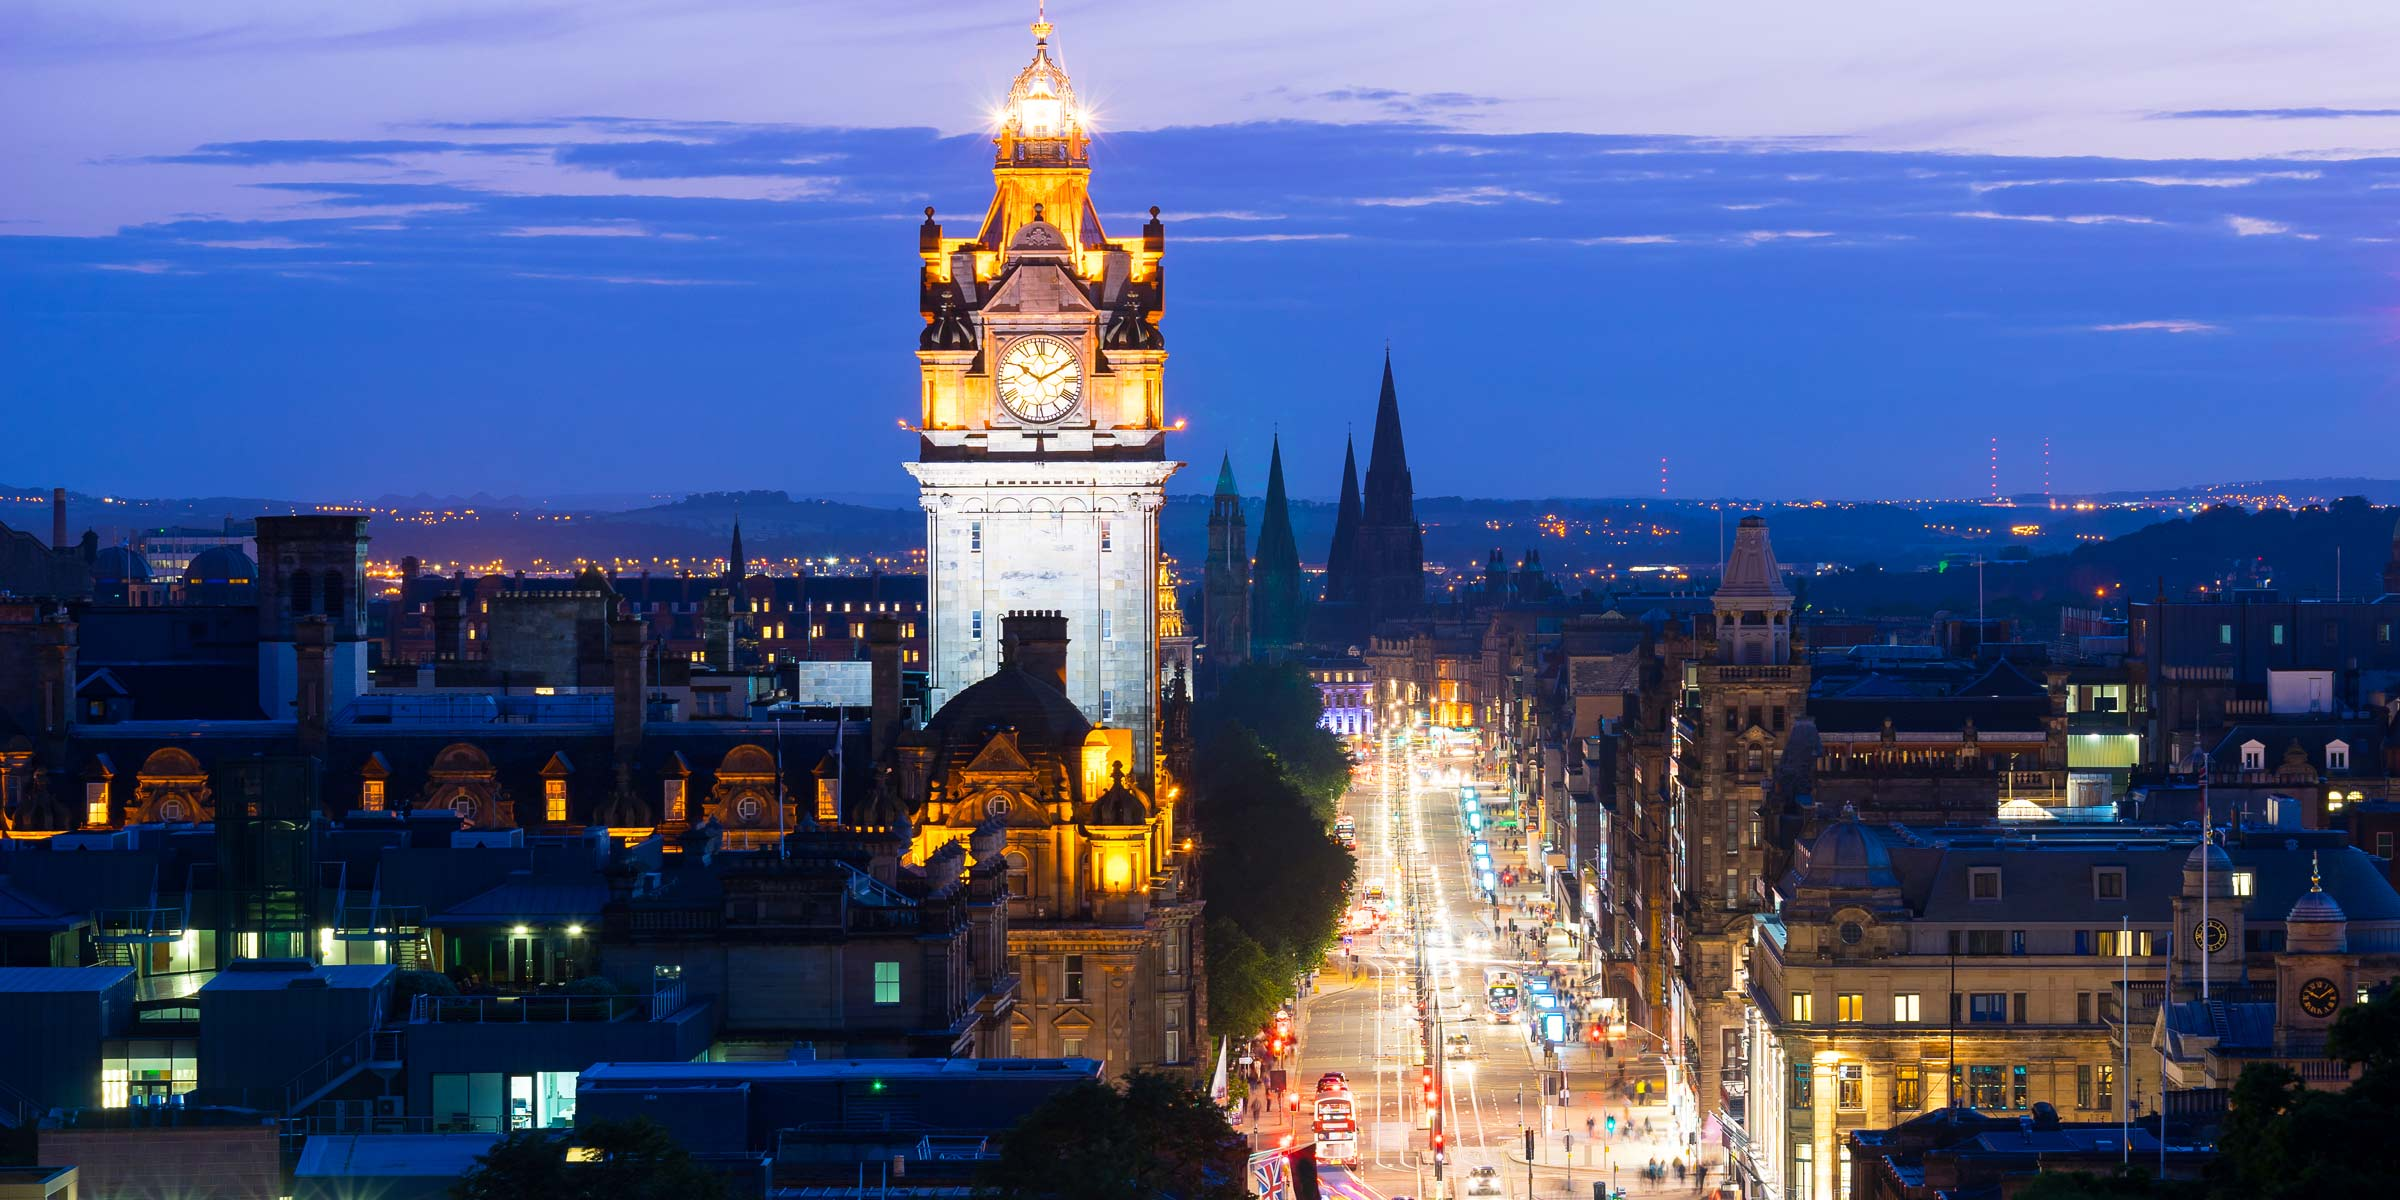 Commercial Property in Edinburgh